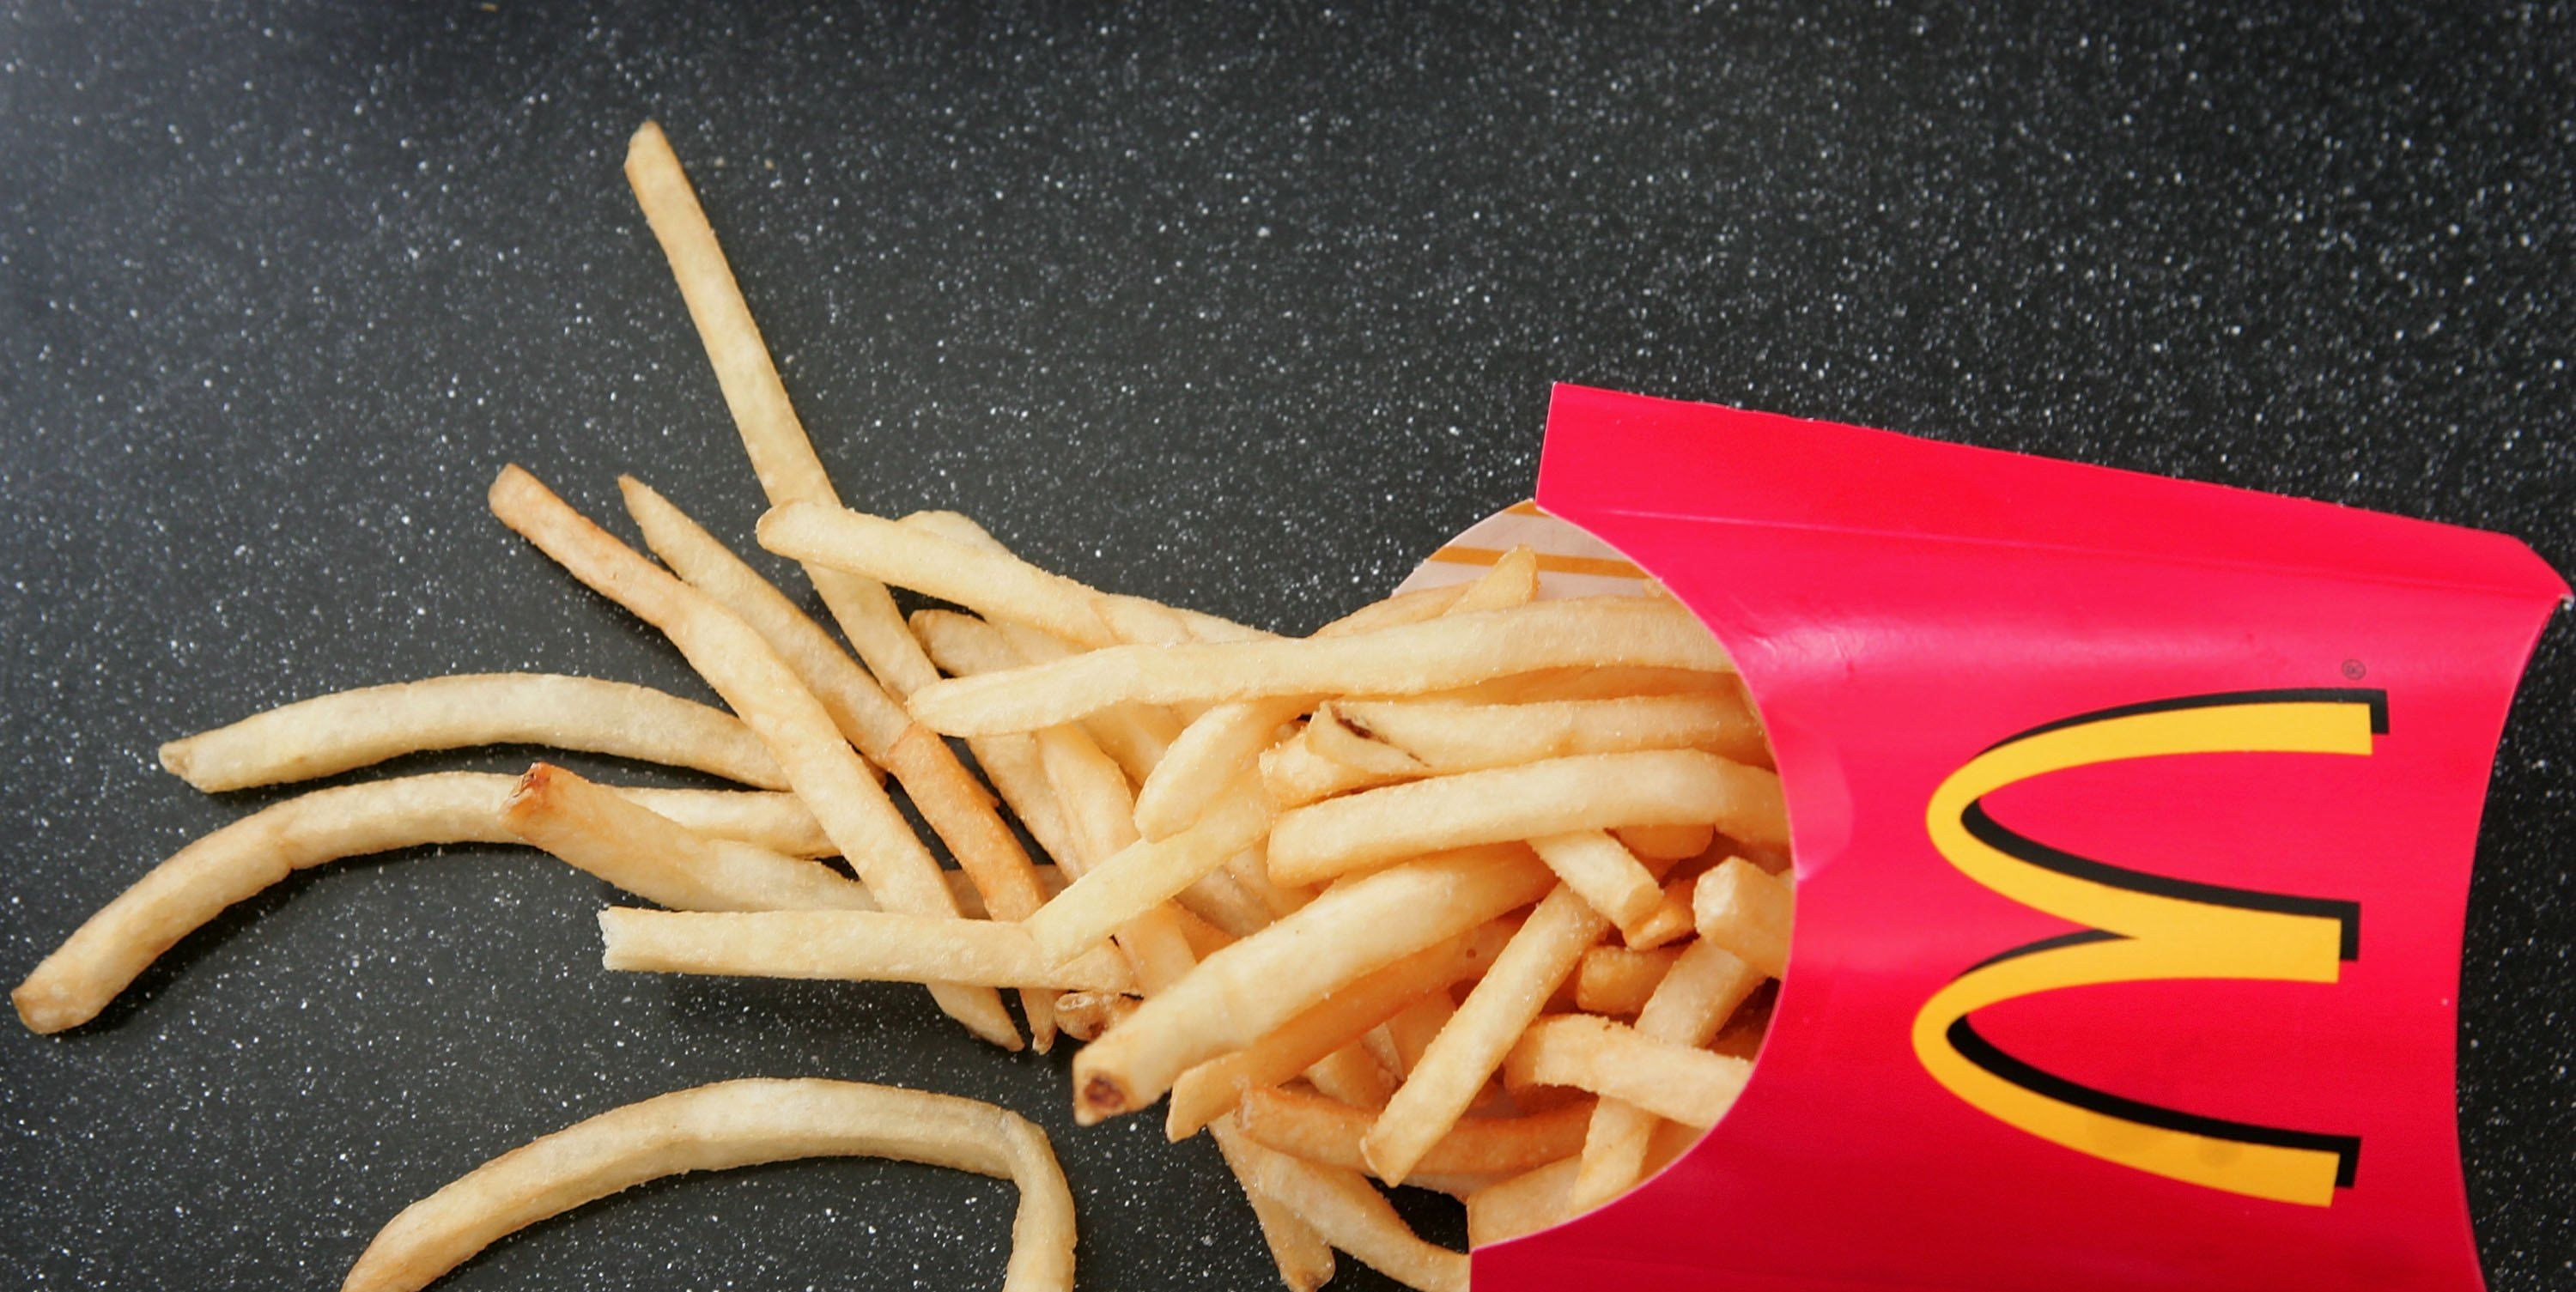 McDonald's Easter Hours 2020 – Is McDonald's Open on Easter Sunday?